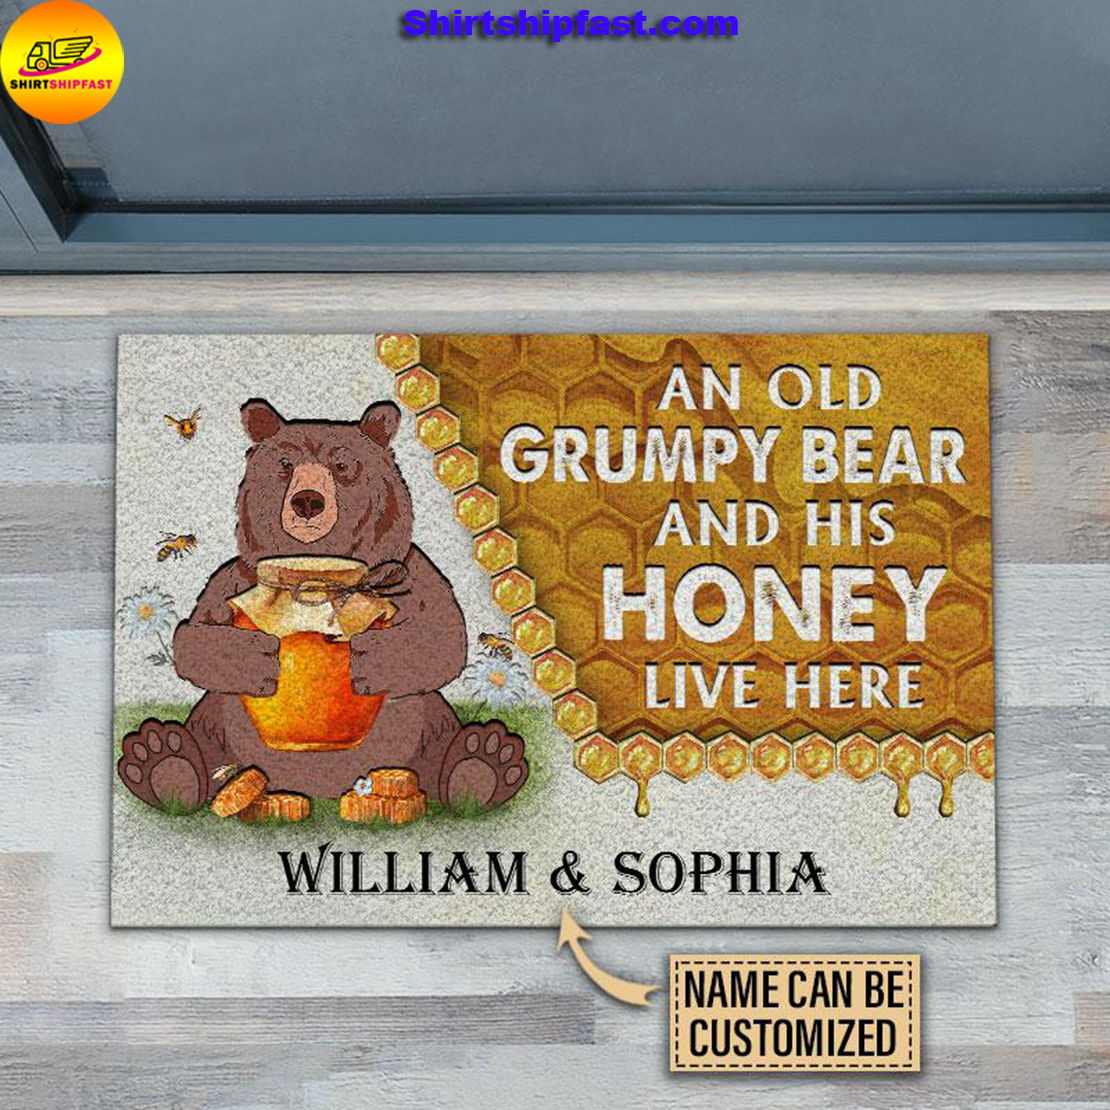 Personalized Bear and his honey bee live here customized doormat - Picture 1